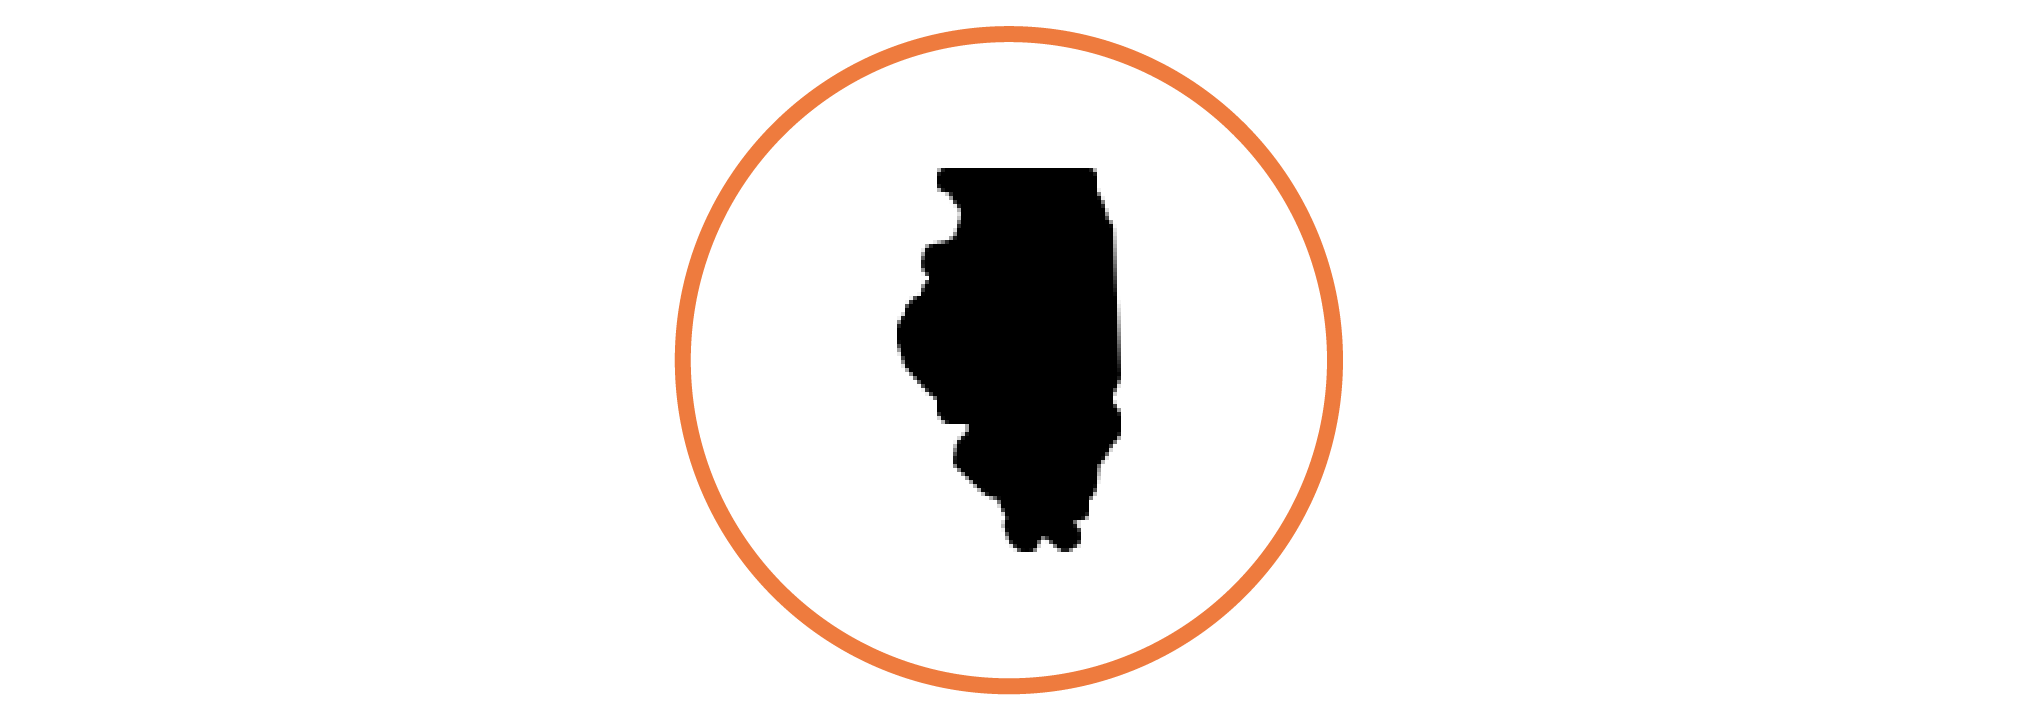 icon-location-illinois-ios-black-filled.png